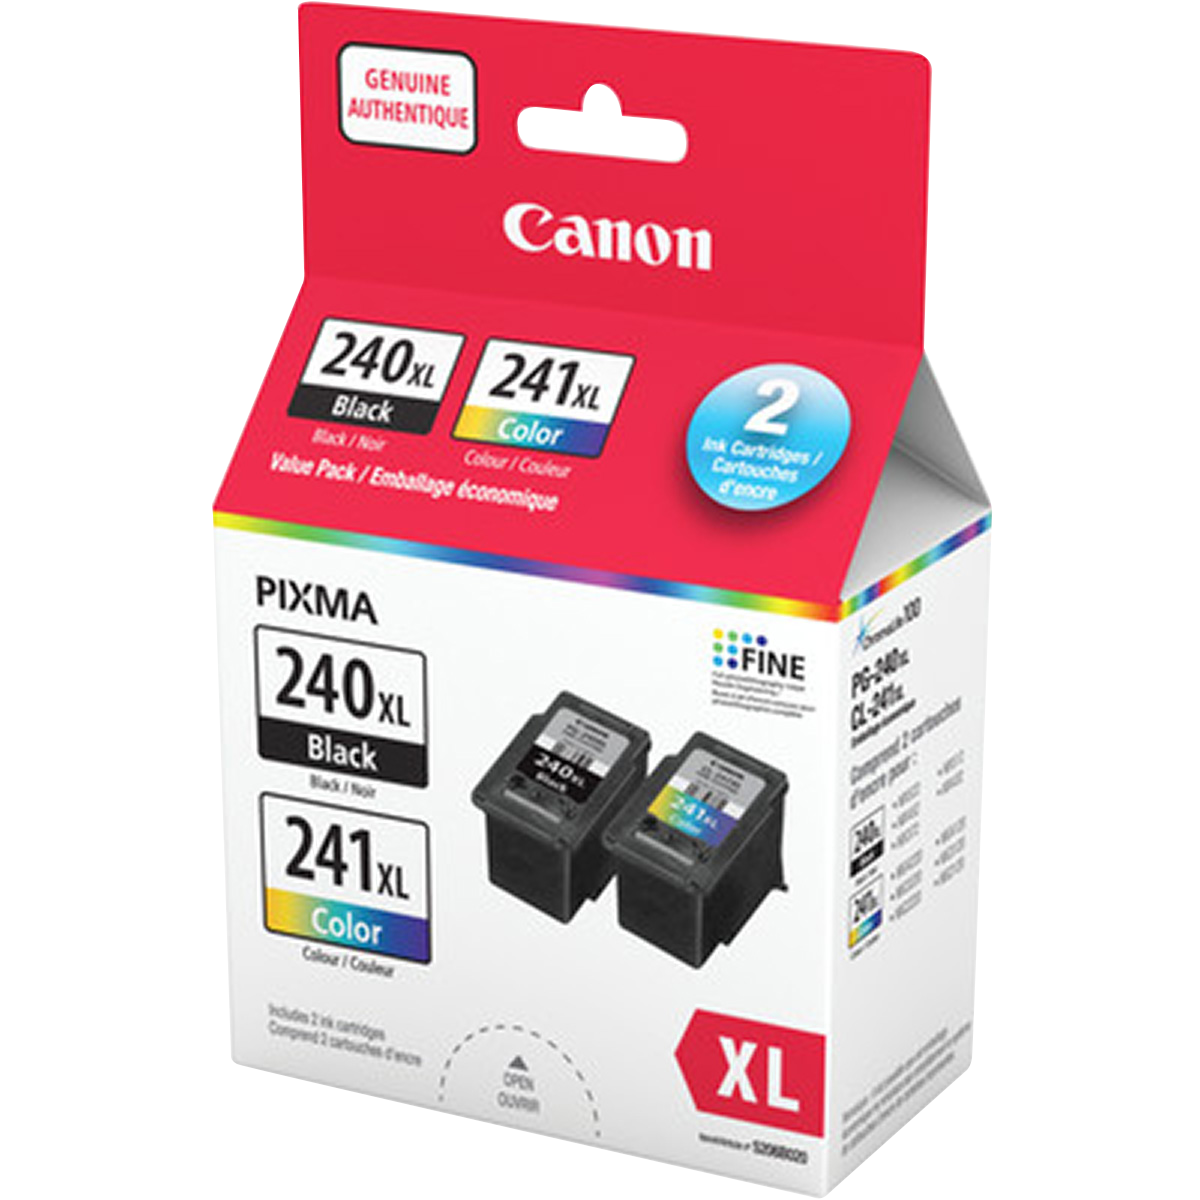 PG-240XL & CL-241XL Ink Cartridges